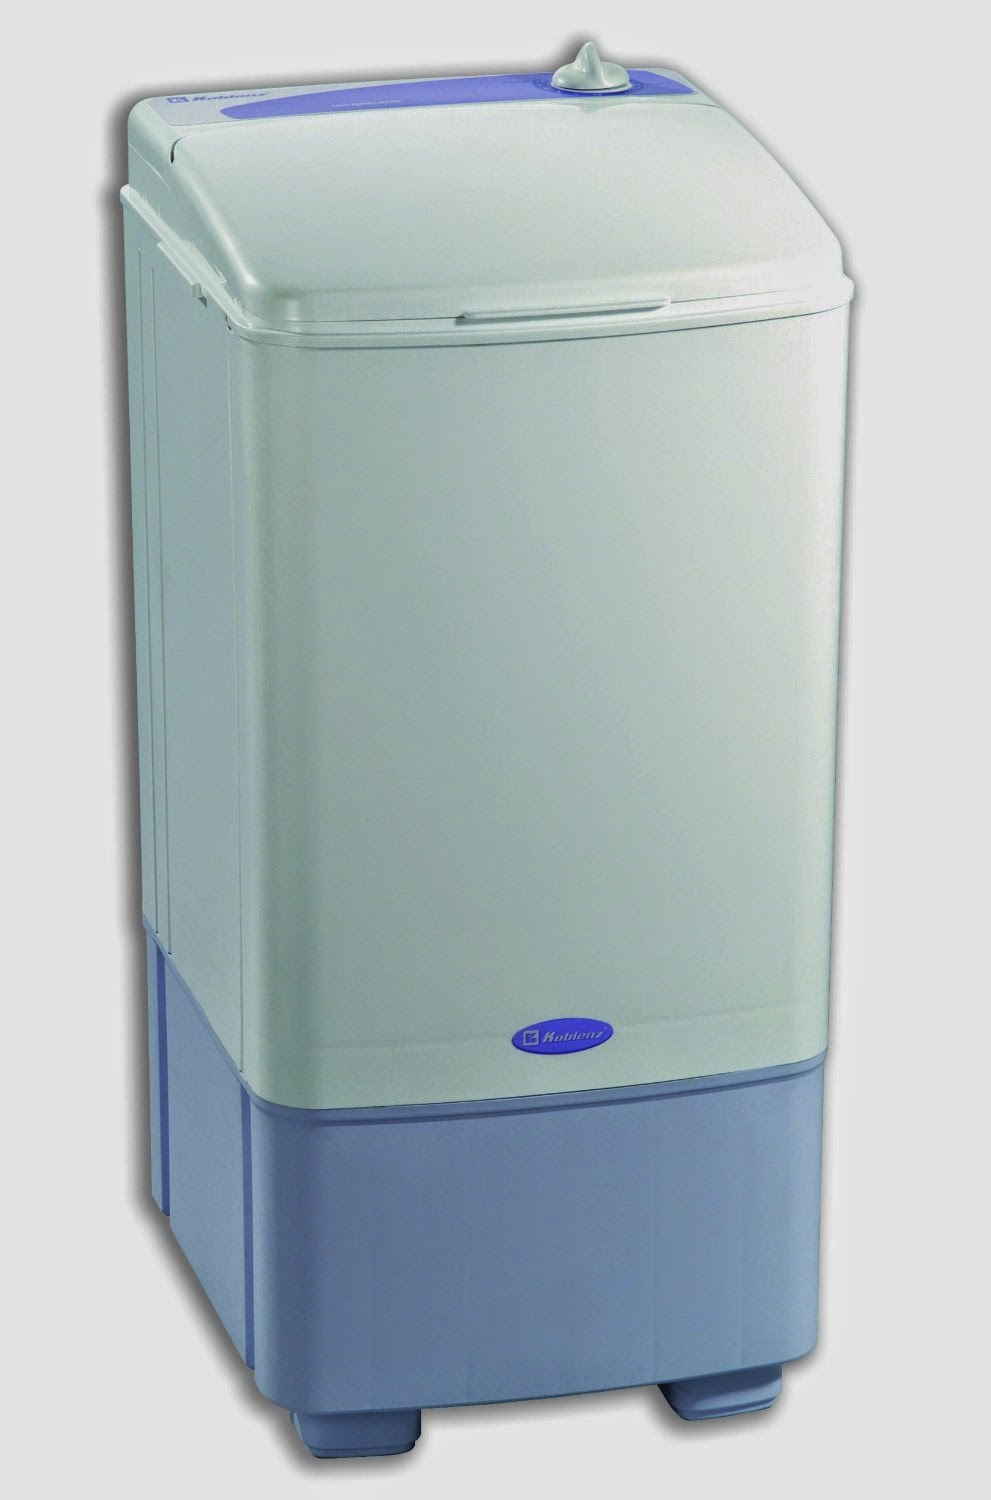 best washer dryer combo: best portable washer dryer combo